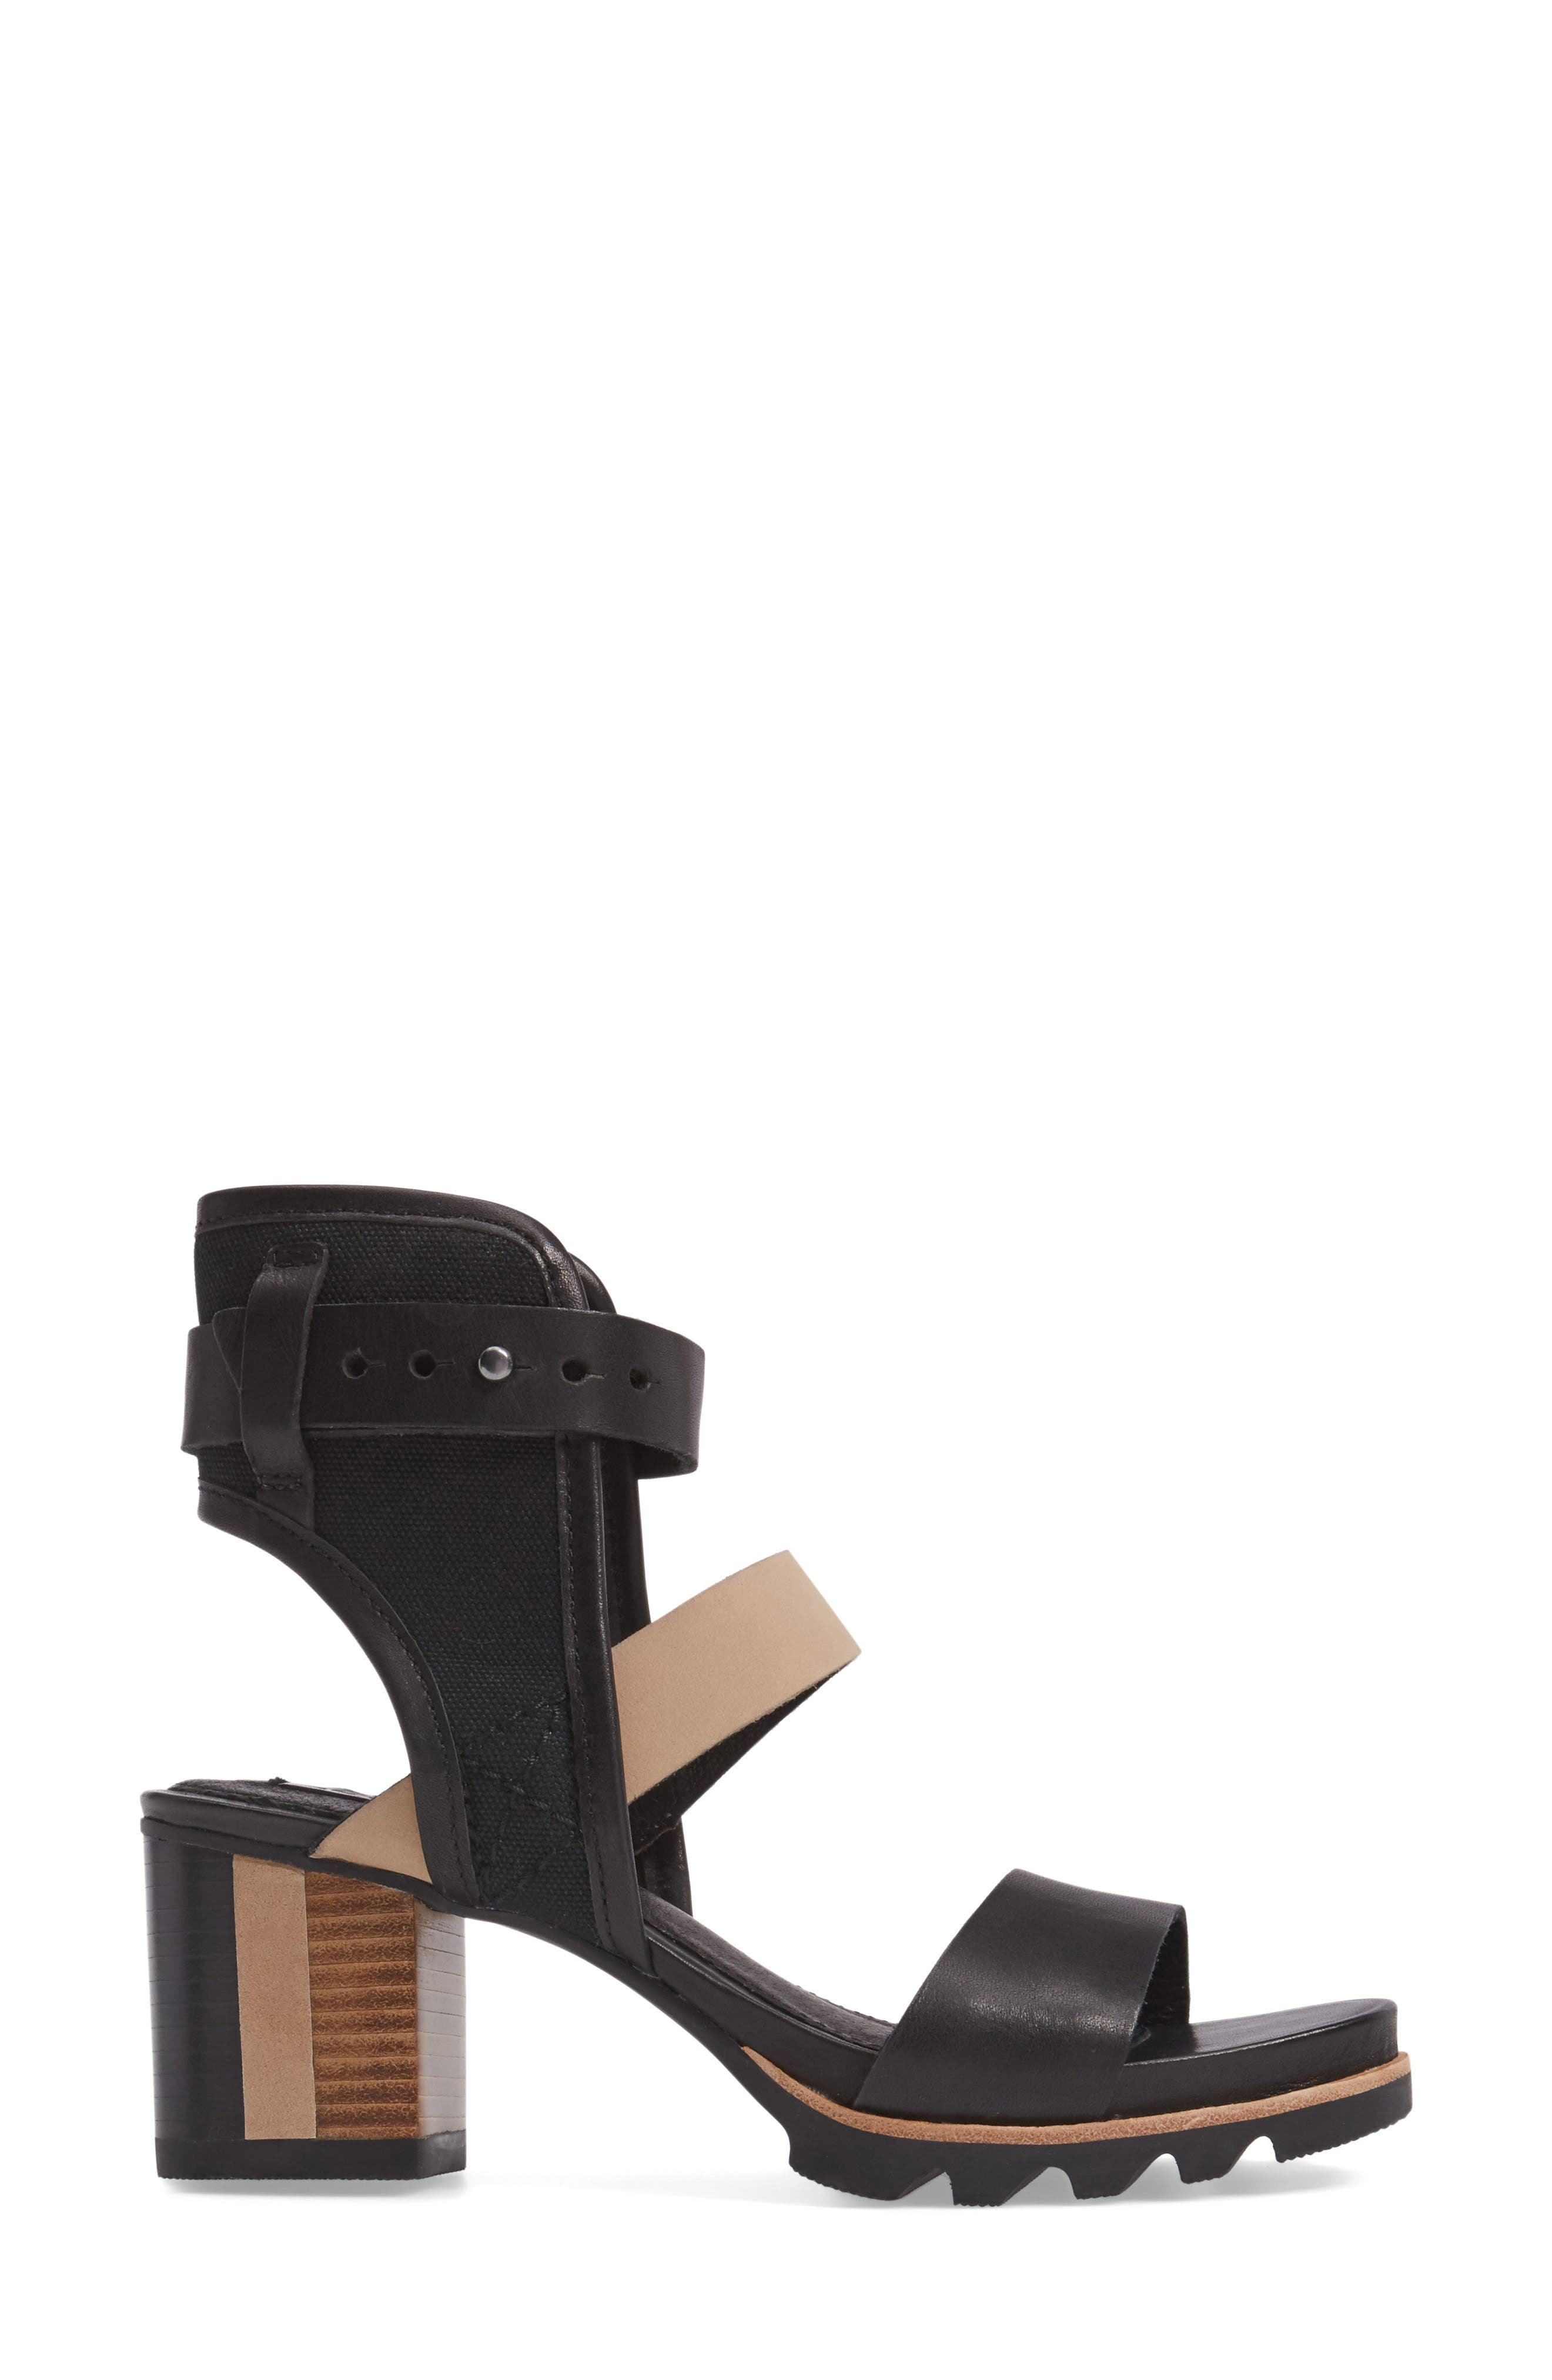 Alternate Image 3  - SOREL Addington Ankle Cuff Sandal (Women)